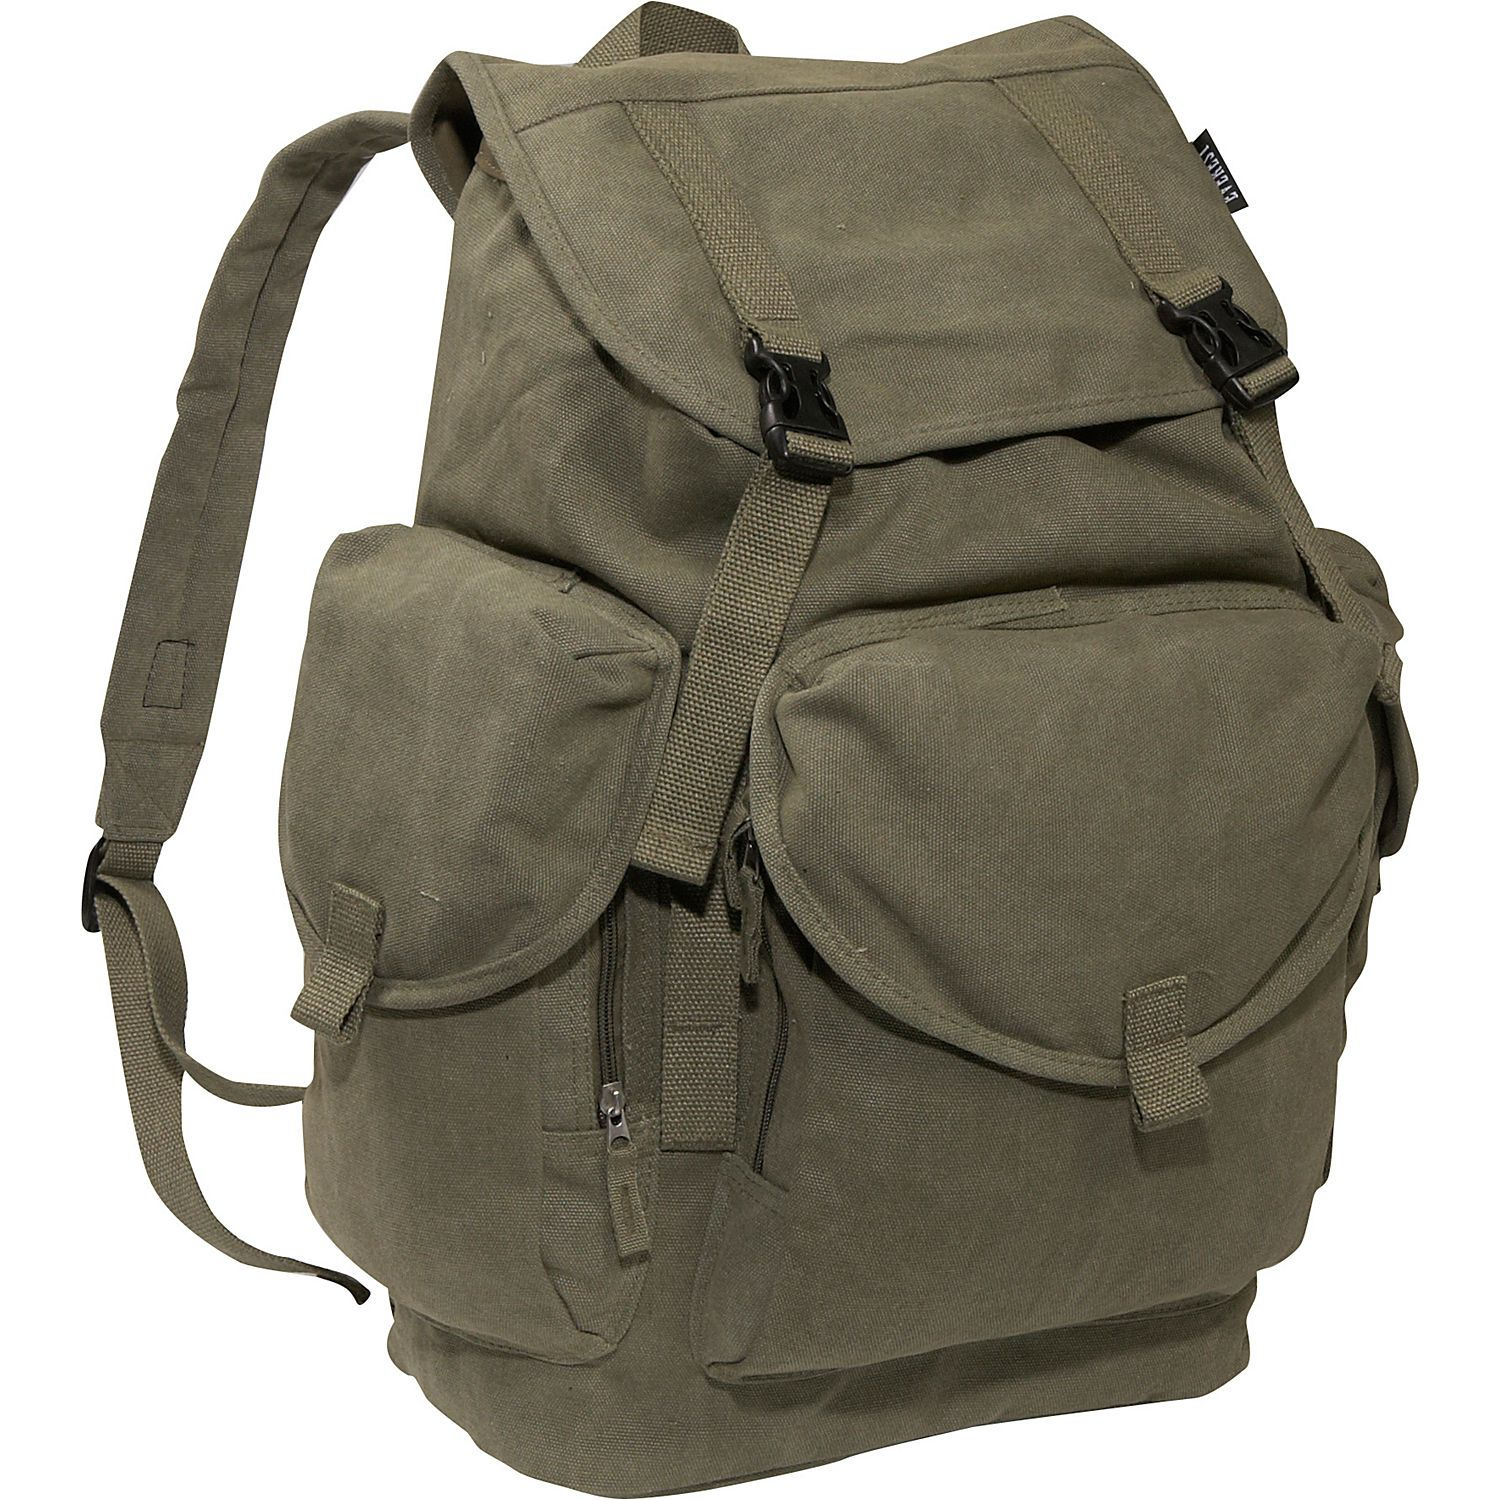 c97432d1c300 Buy the Everest Large Cotton Canvas Backpack at eBags - experts in bags and  accessories since 1999. We offer easy returns